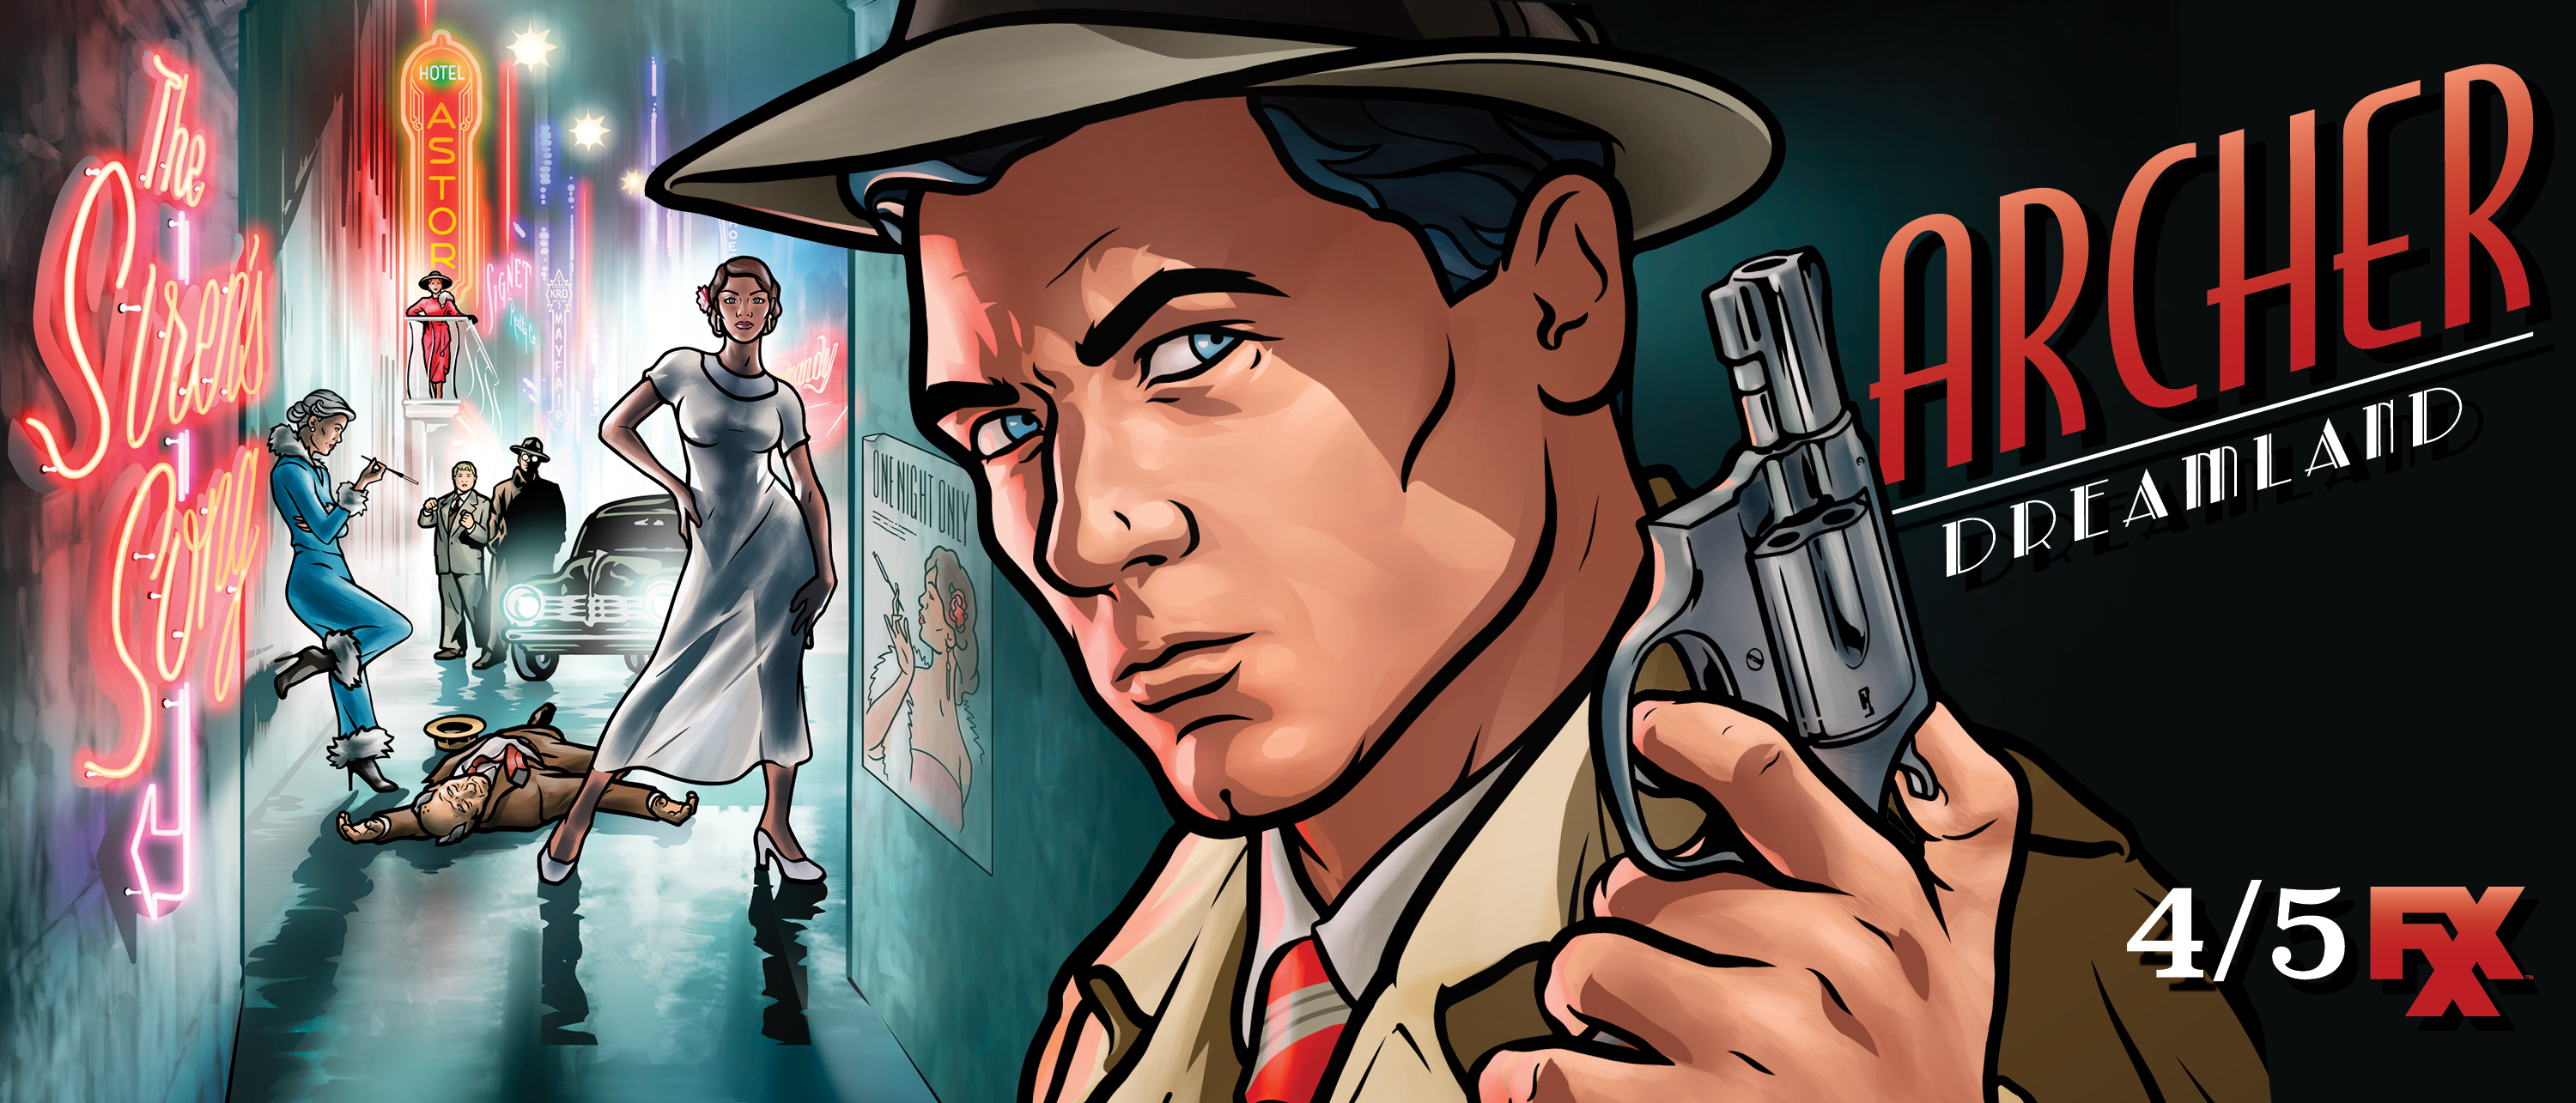 Archer tv show on fxx ratings canceled or season 9 - Archer episodes youtube ...